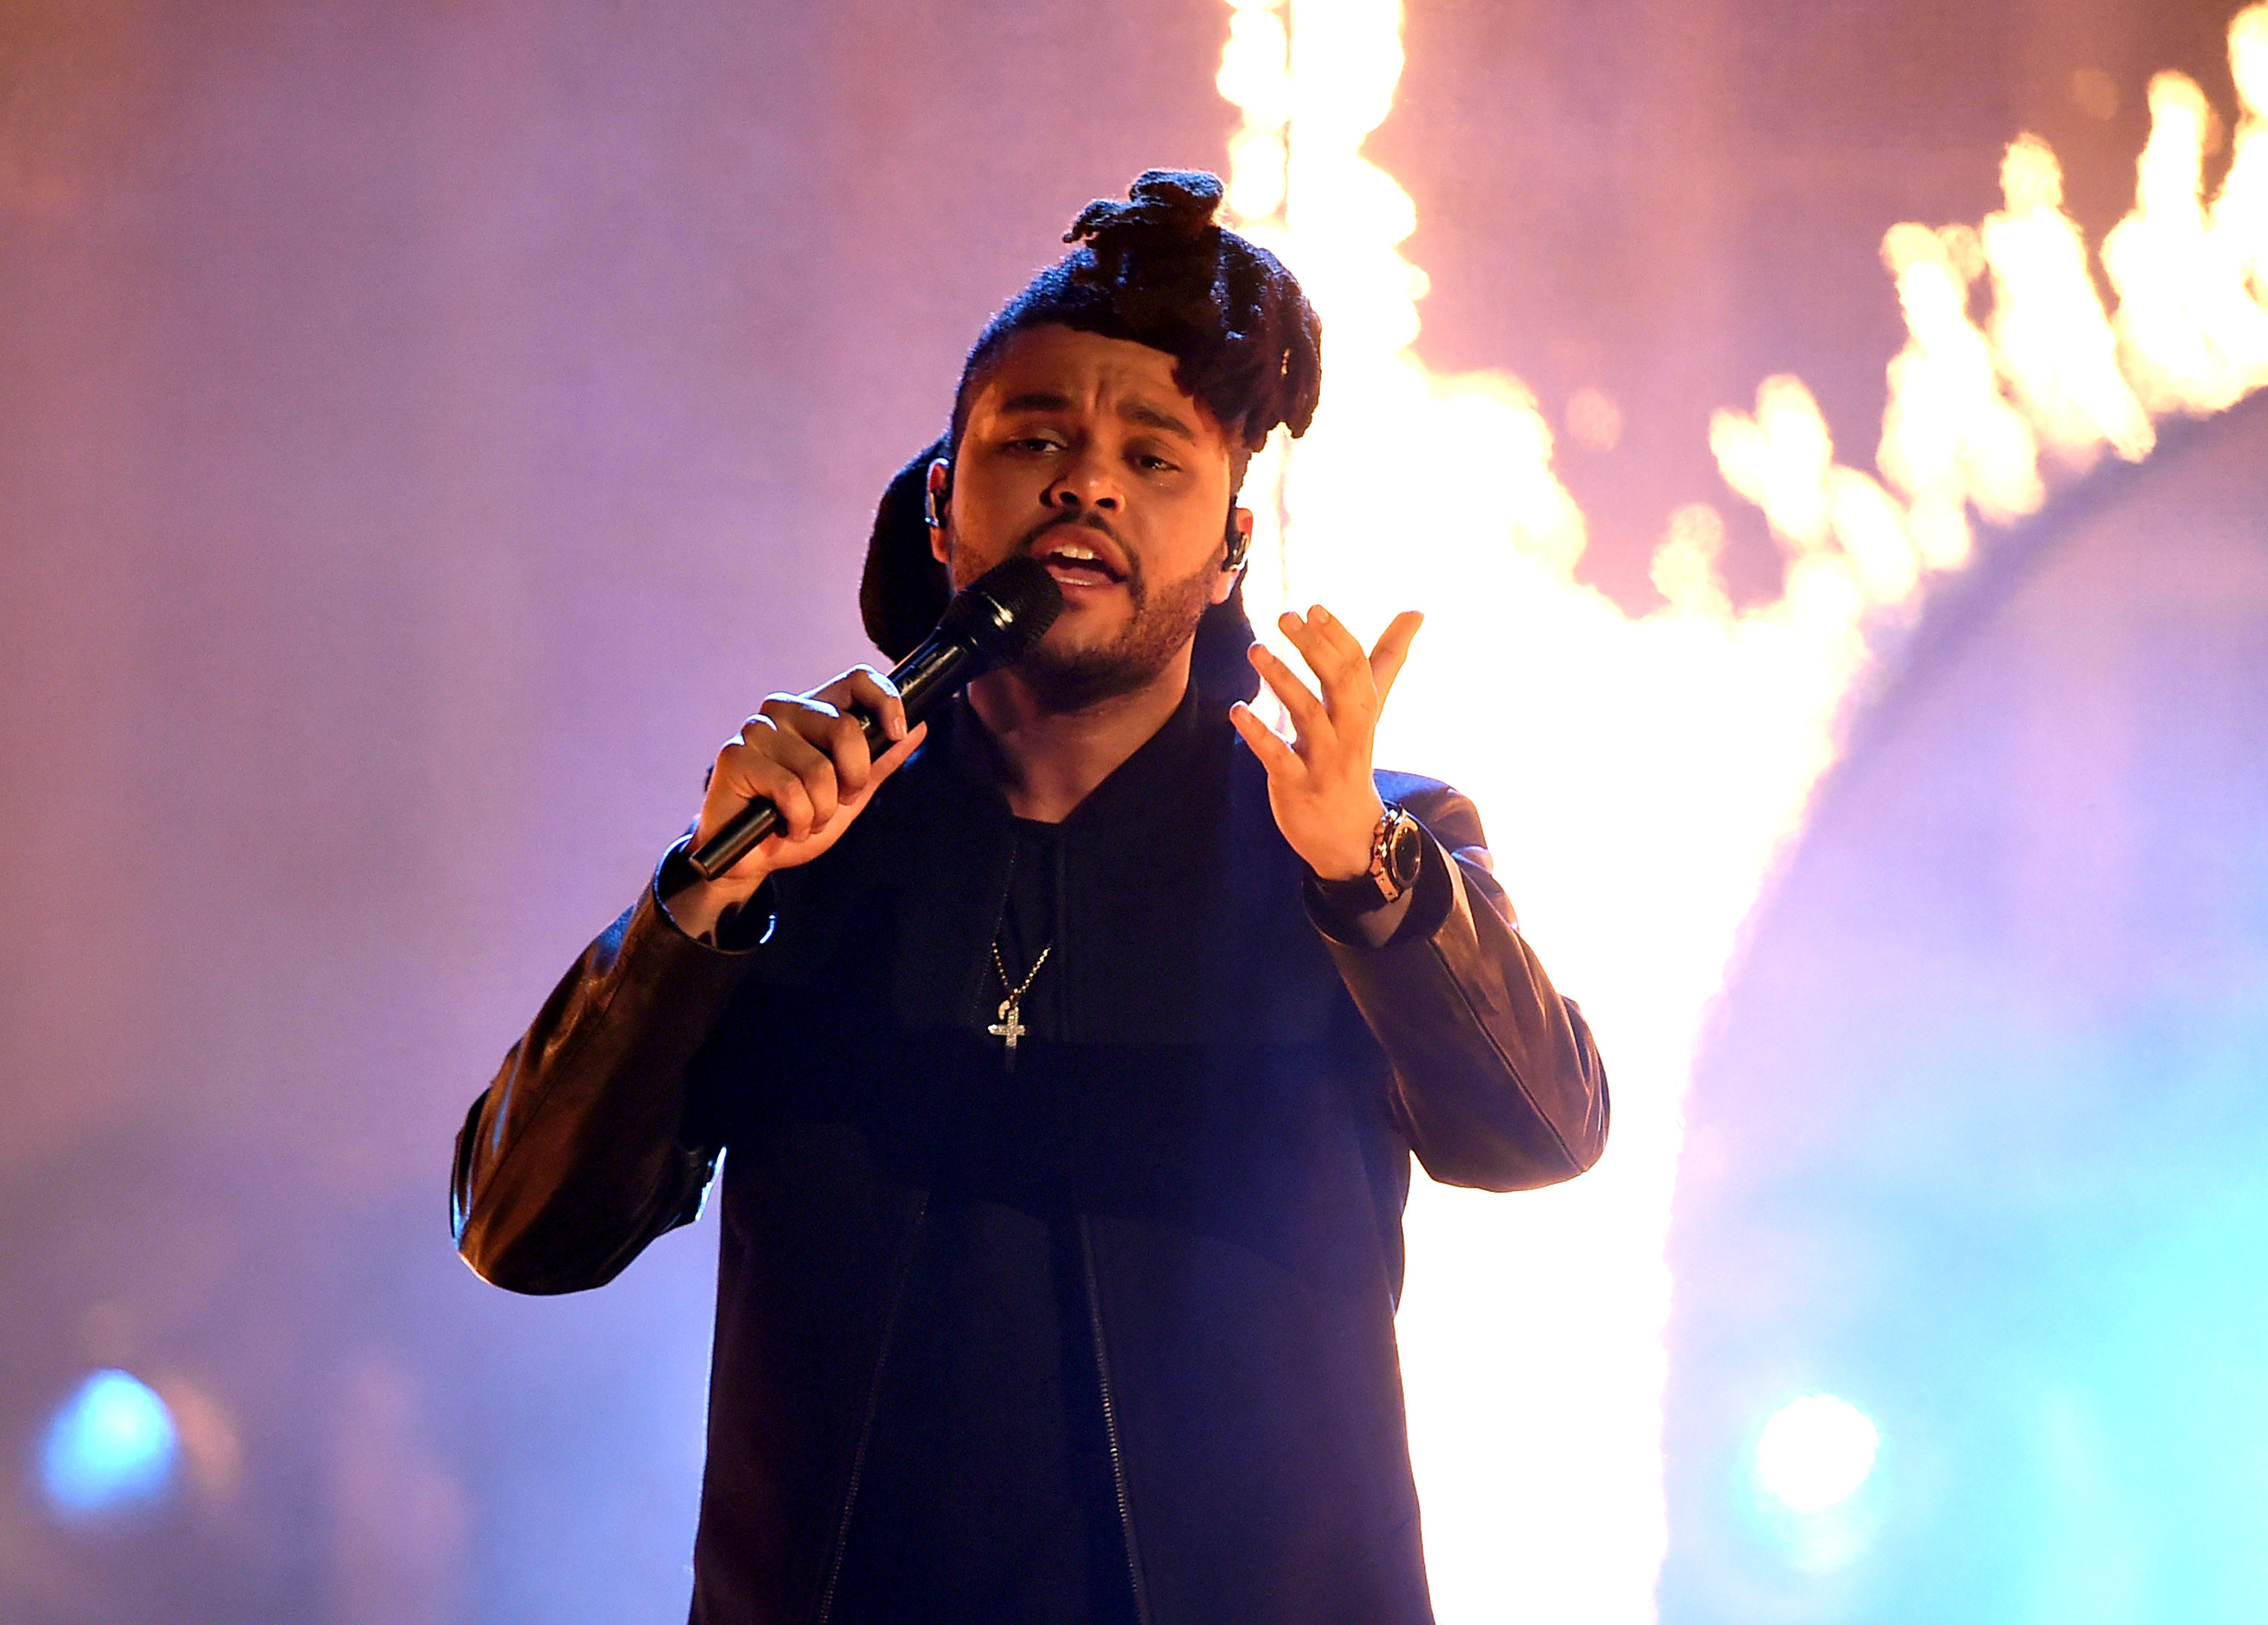 3000x2149 The Weeknd Performing Wallpaper 60123